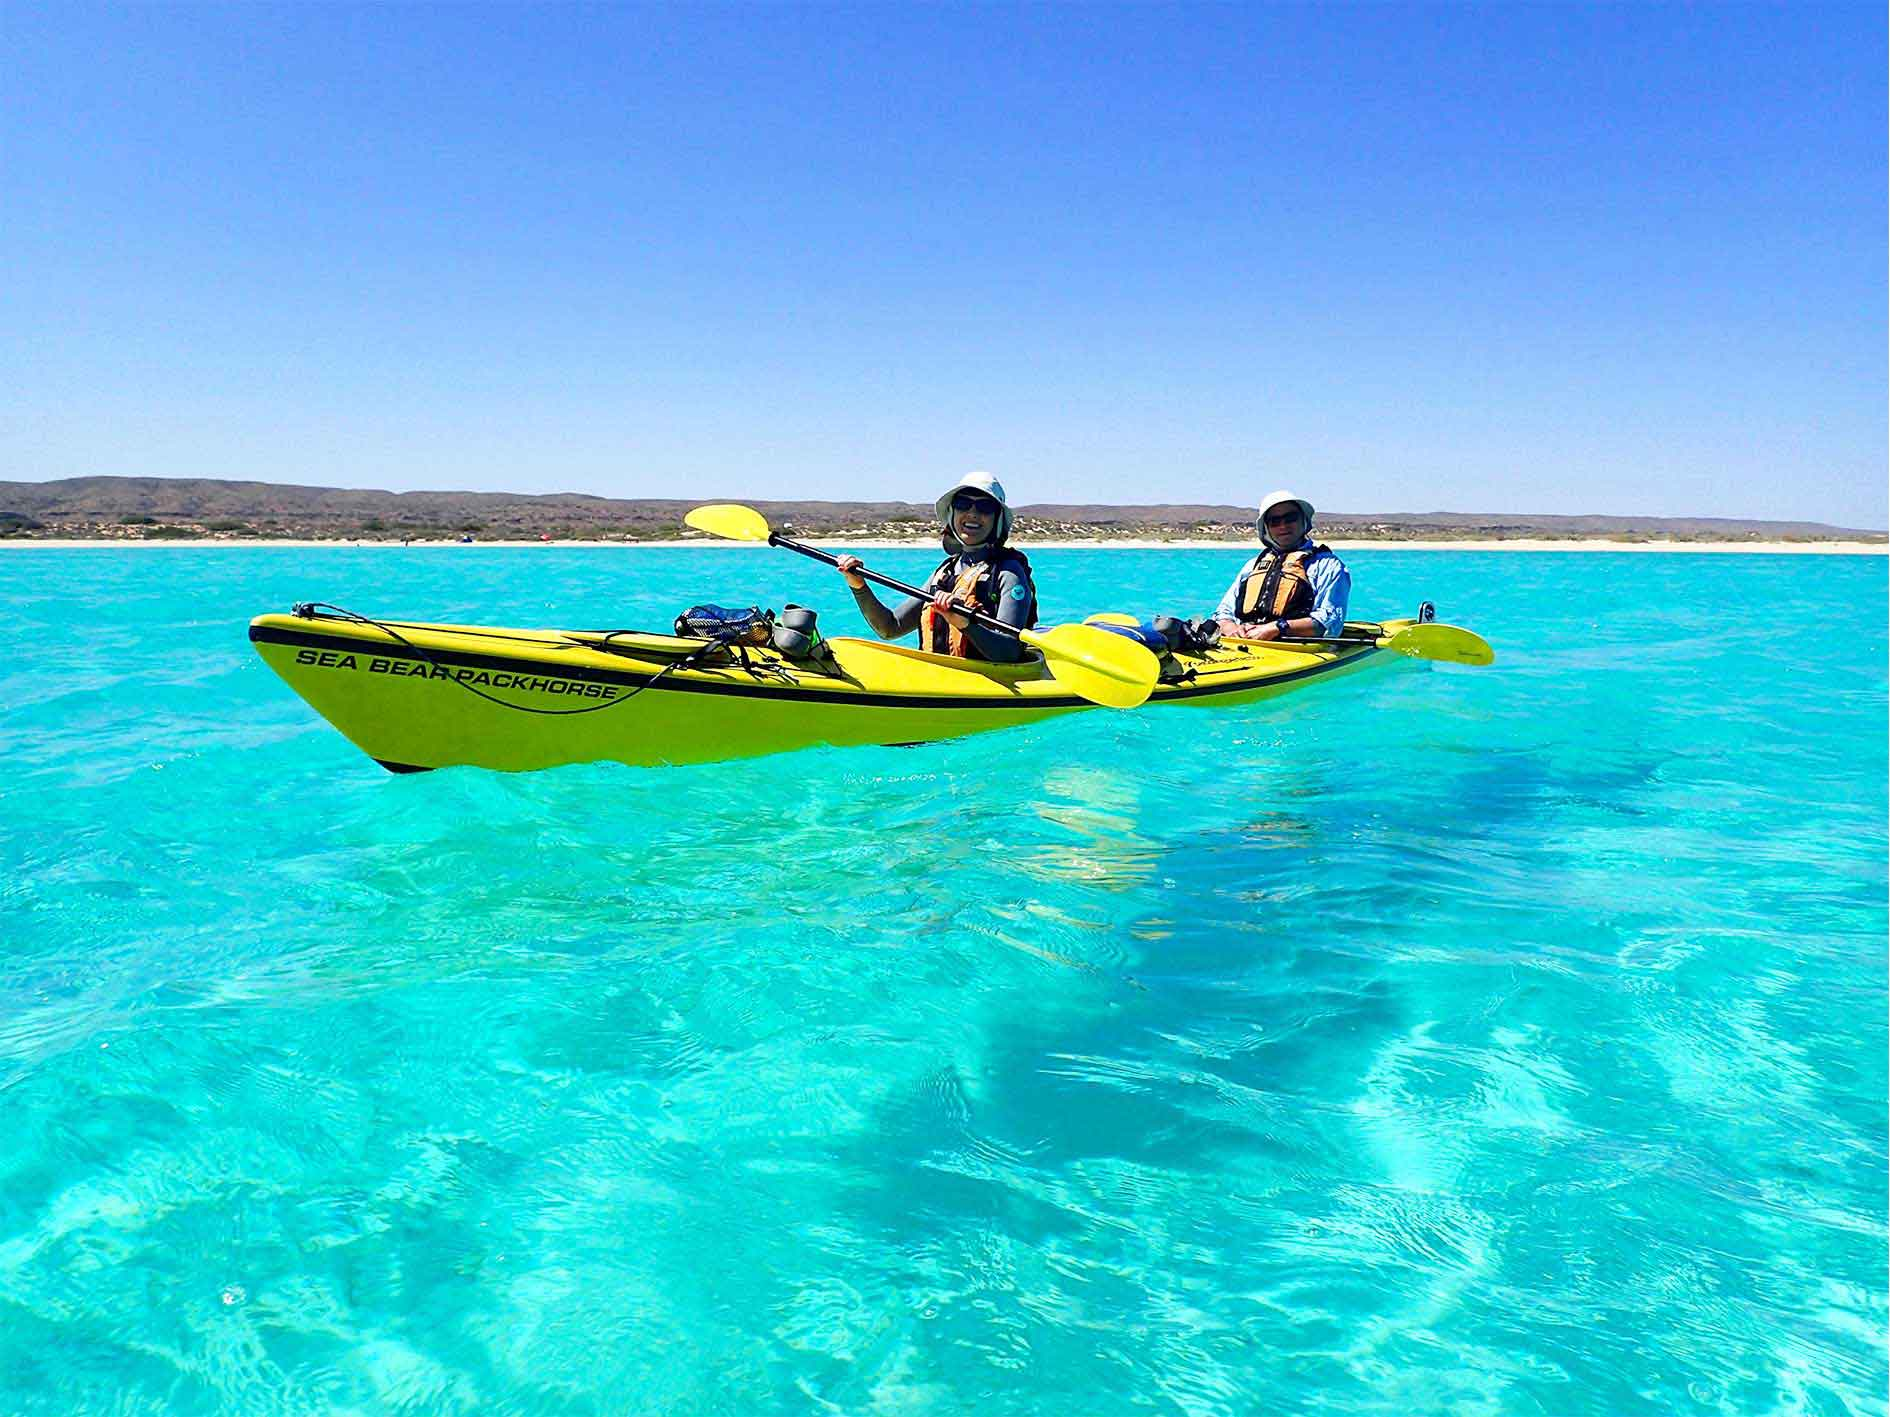 Couple paddle a double sea kayak across turquoise water on overnight sea kayaking, snorkelling, camping tour at Ningaloo Reef, Exmouth, Western Australia